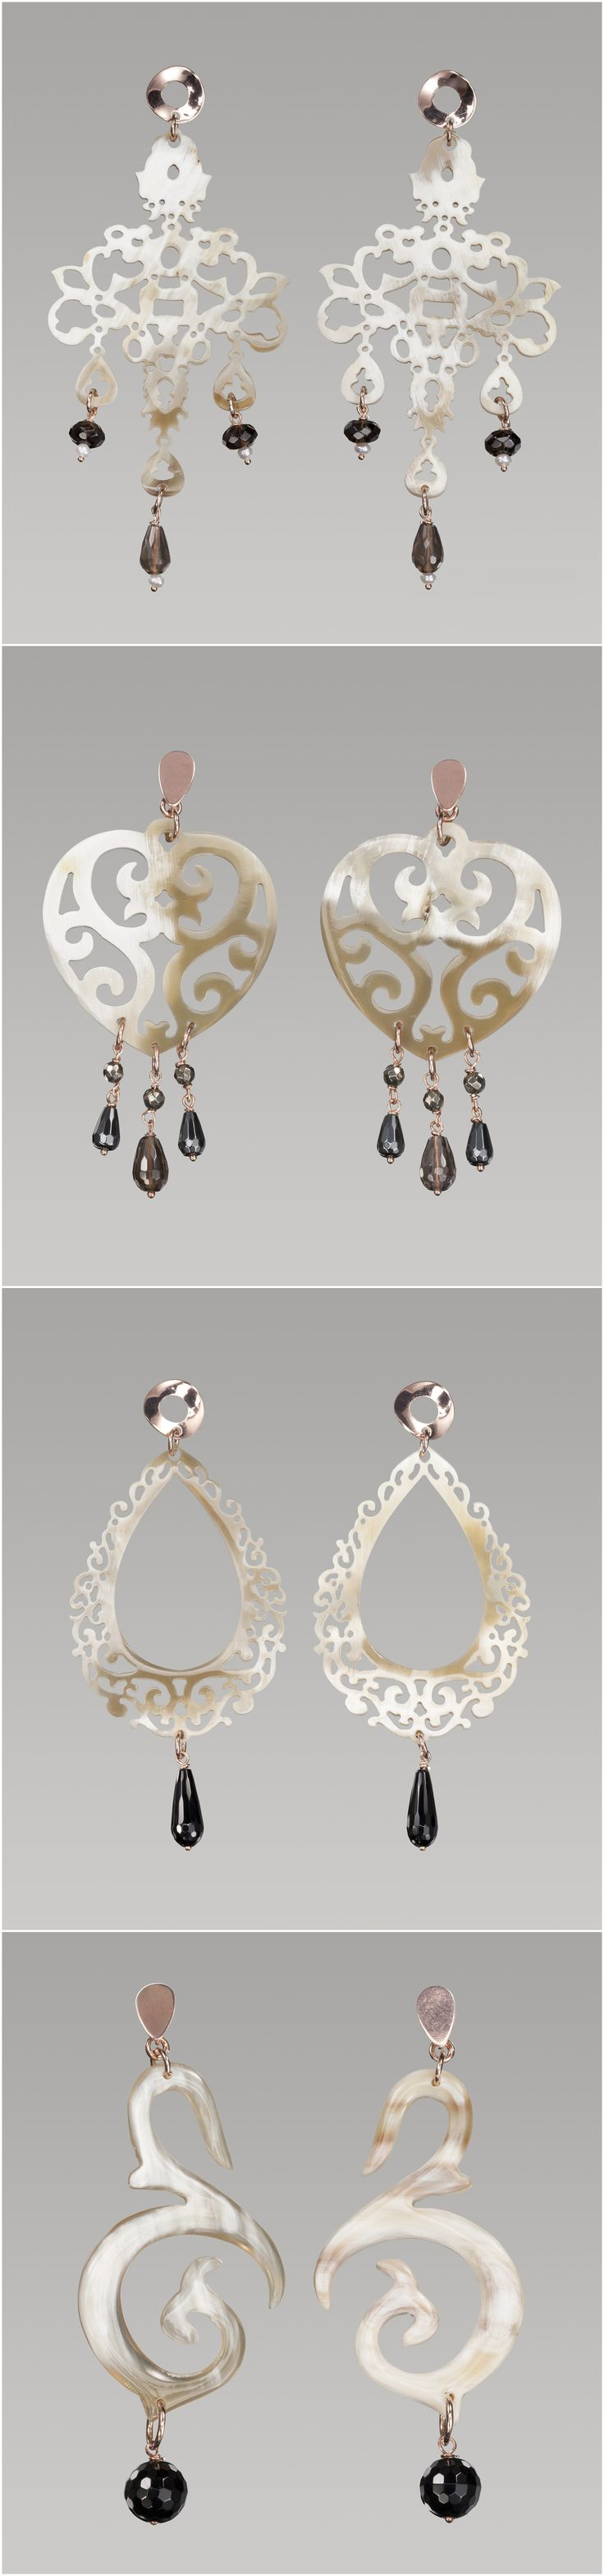 Horn earrings with grey and black stones and Silver 925. All handmade and made in Italy! Visit our website for buy all jewels: http://www.antogioielli.it/